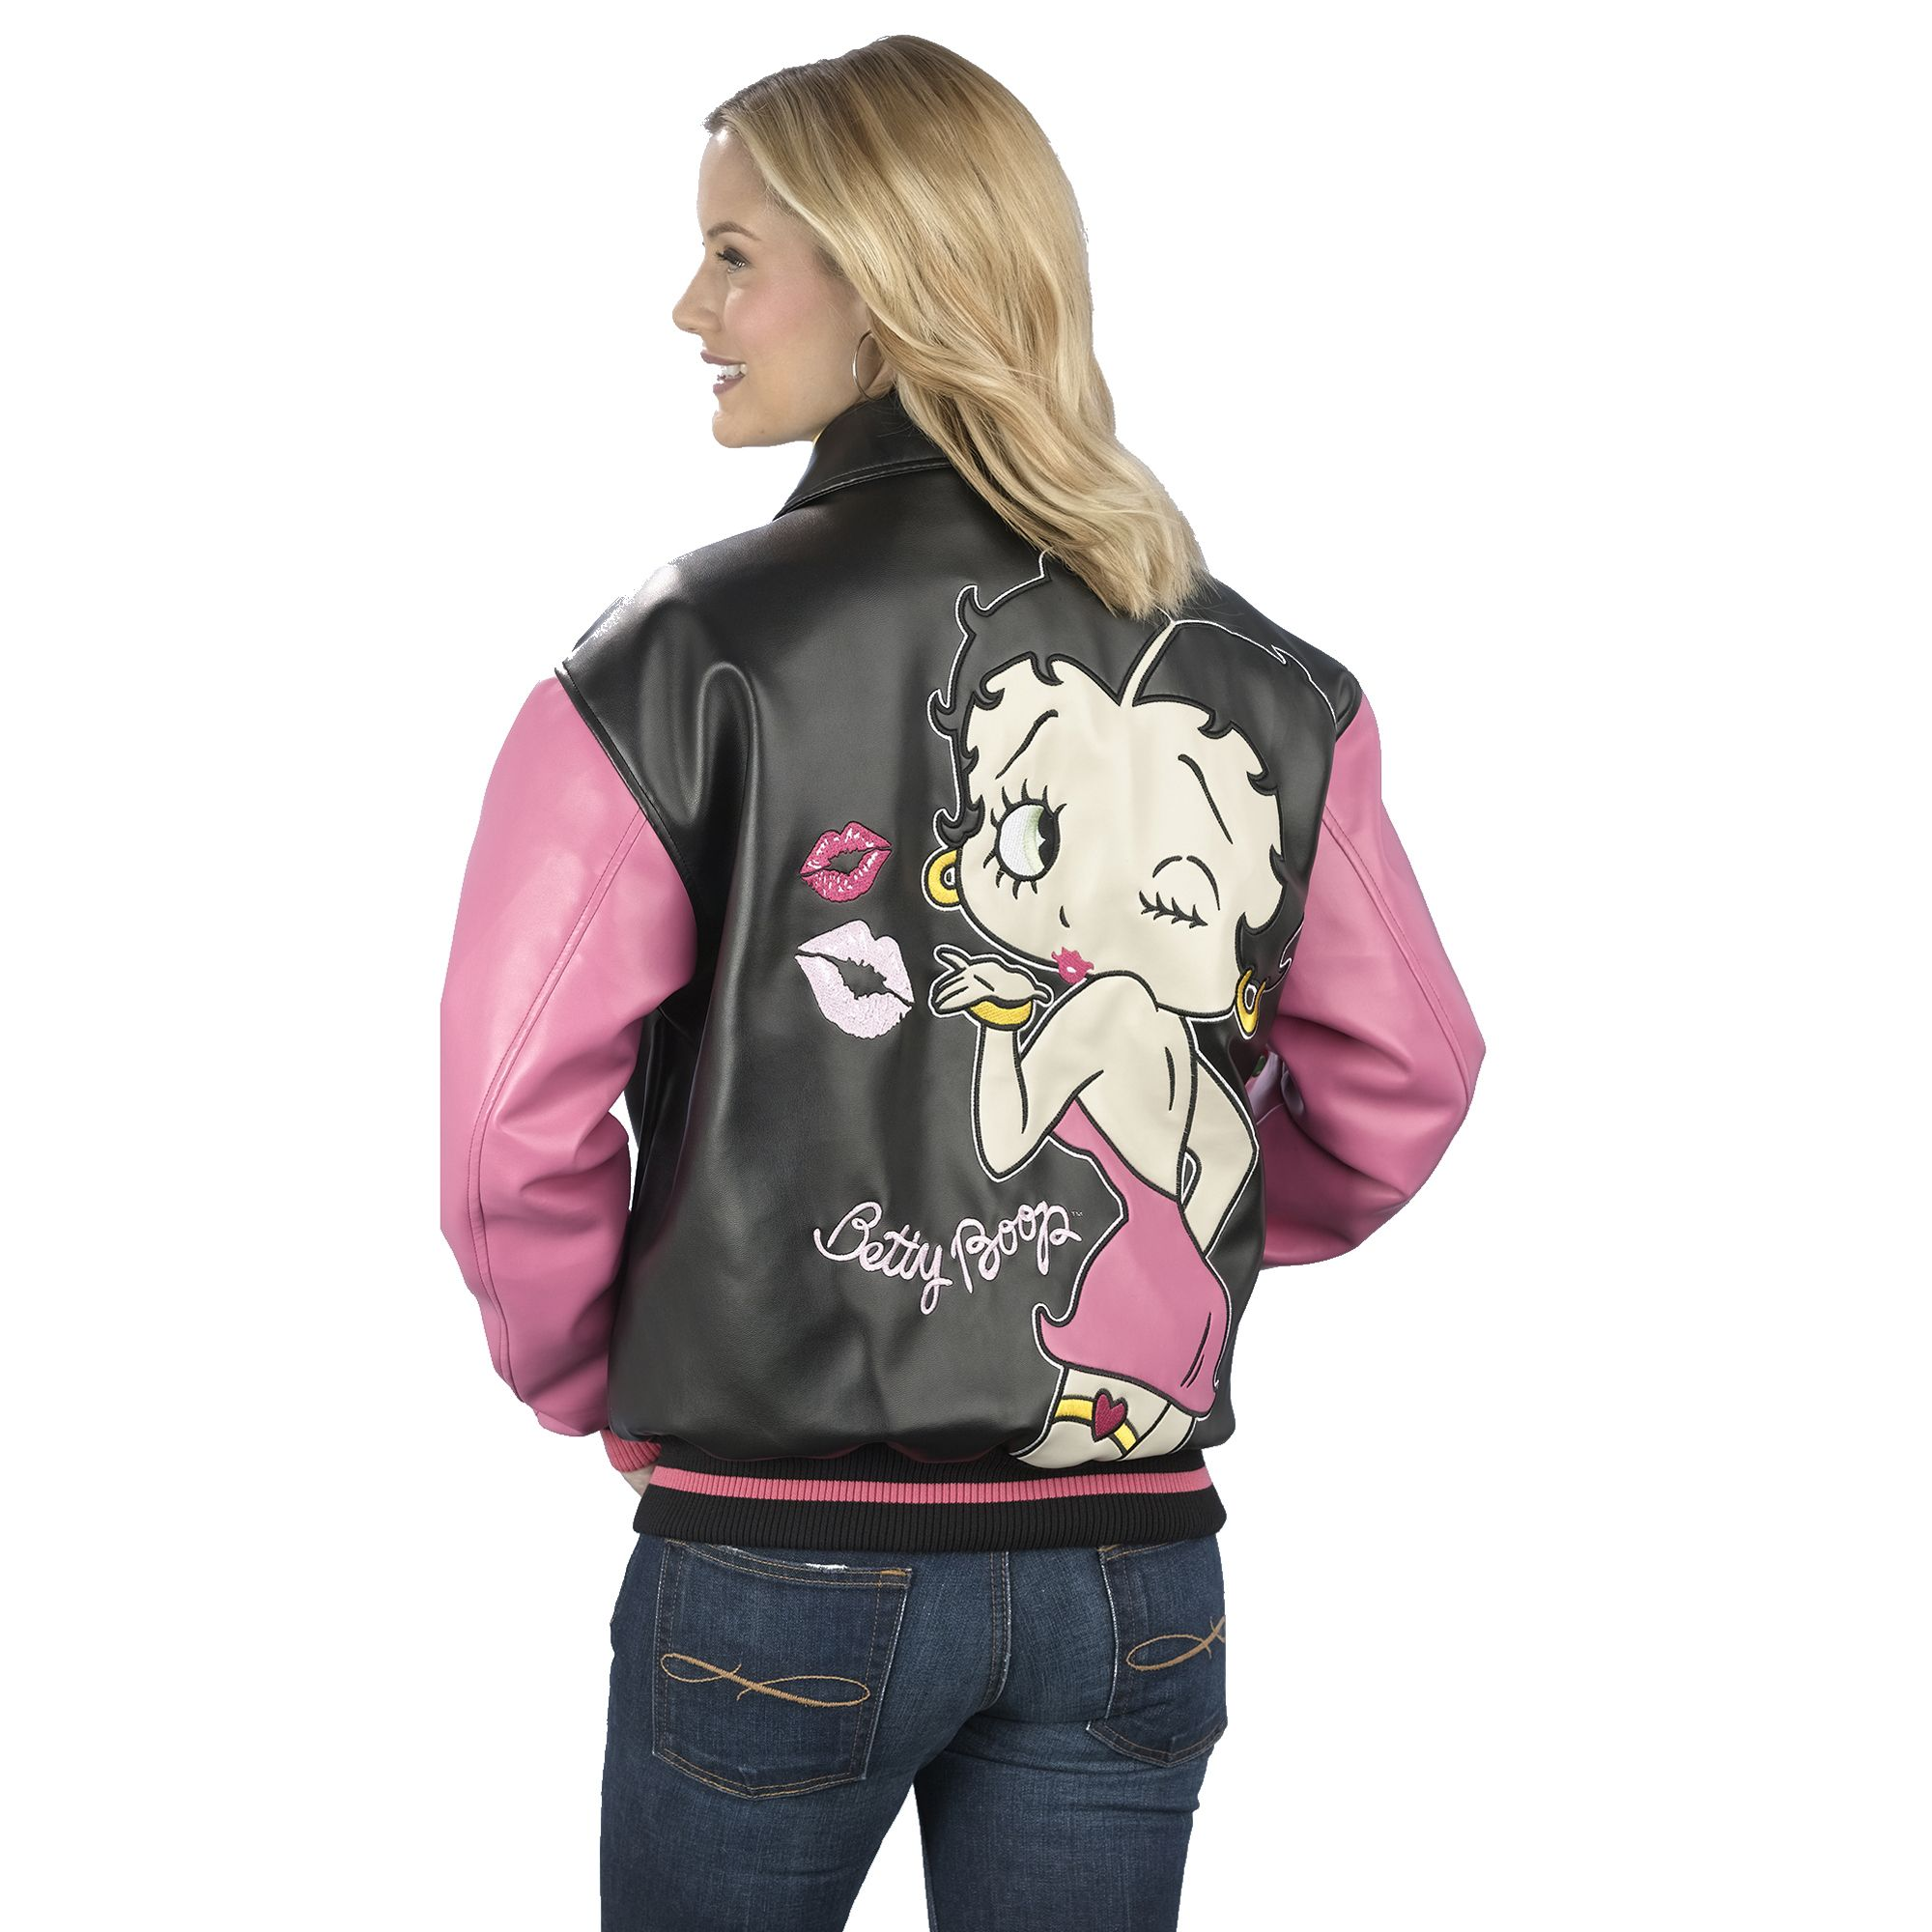 Excelled Women's Boop™ Jacket at Kmart.com